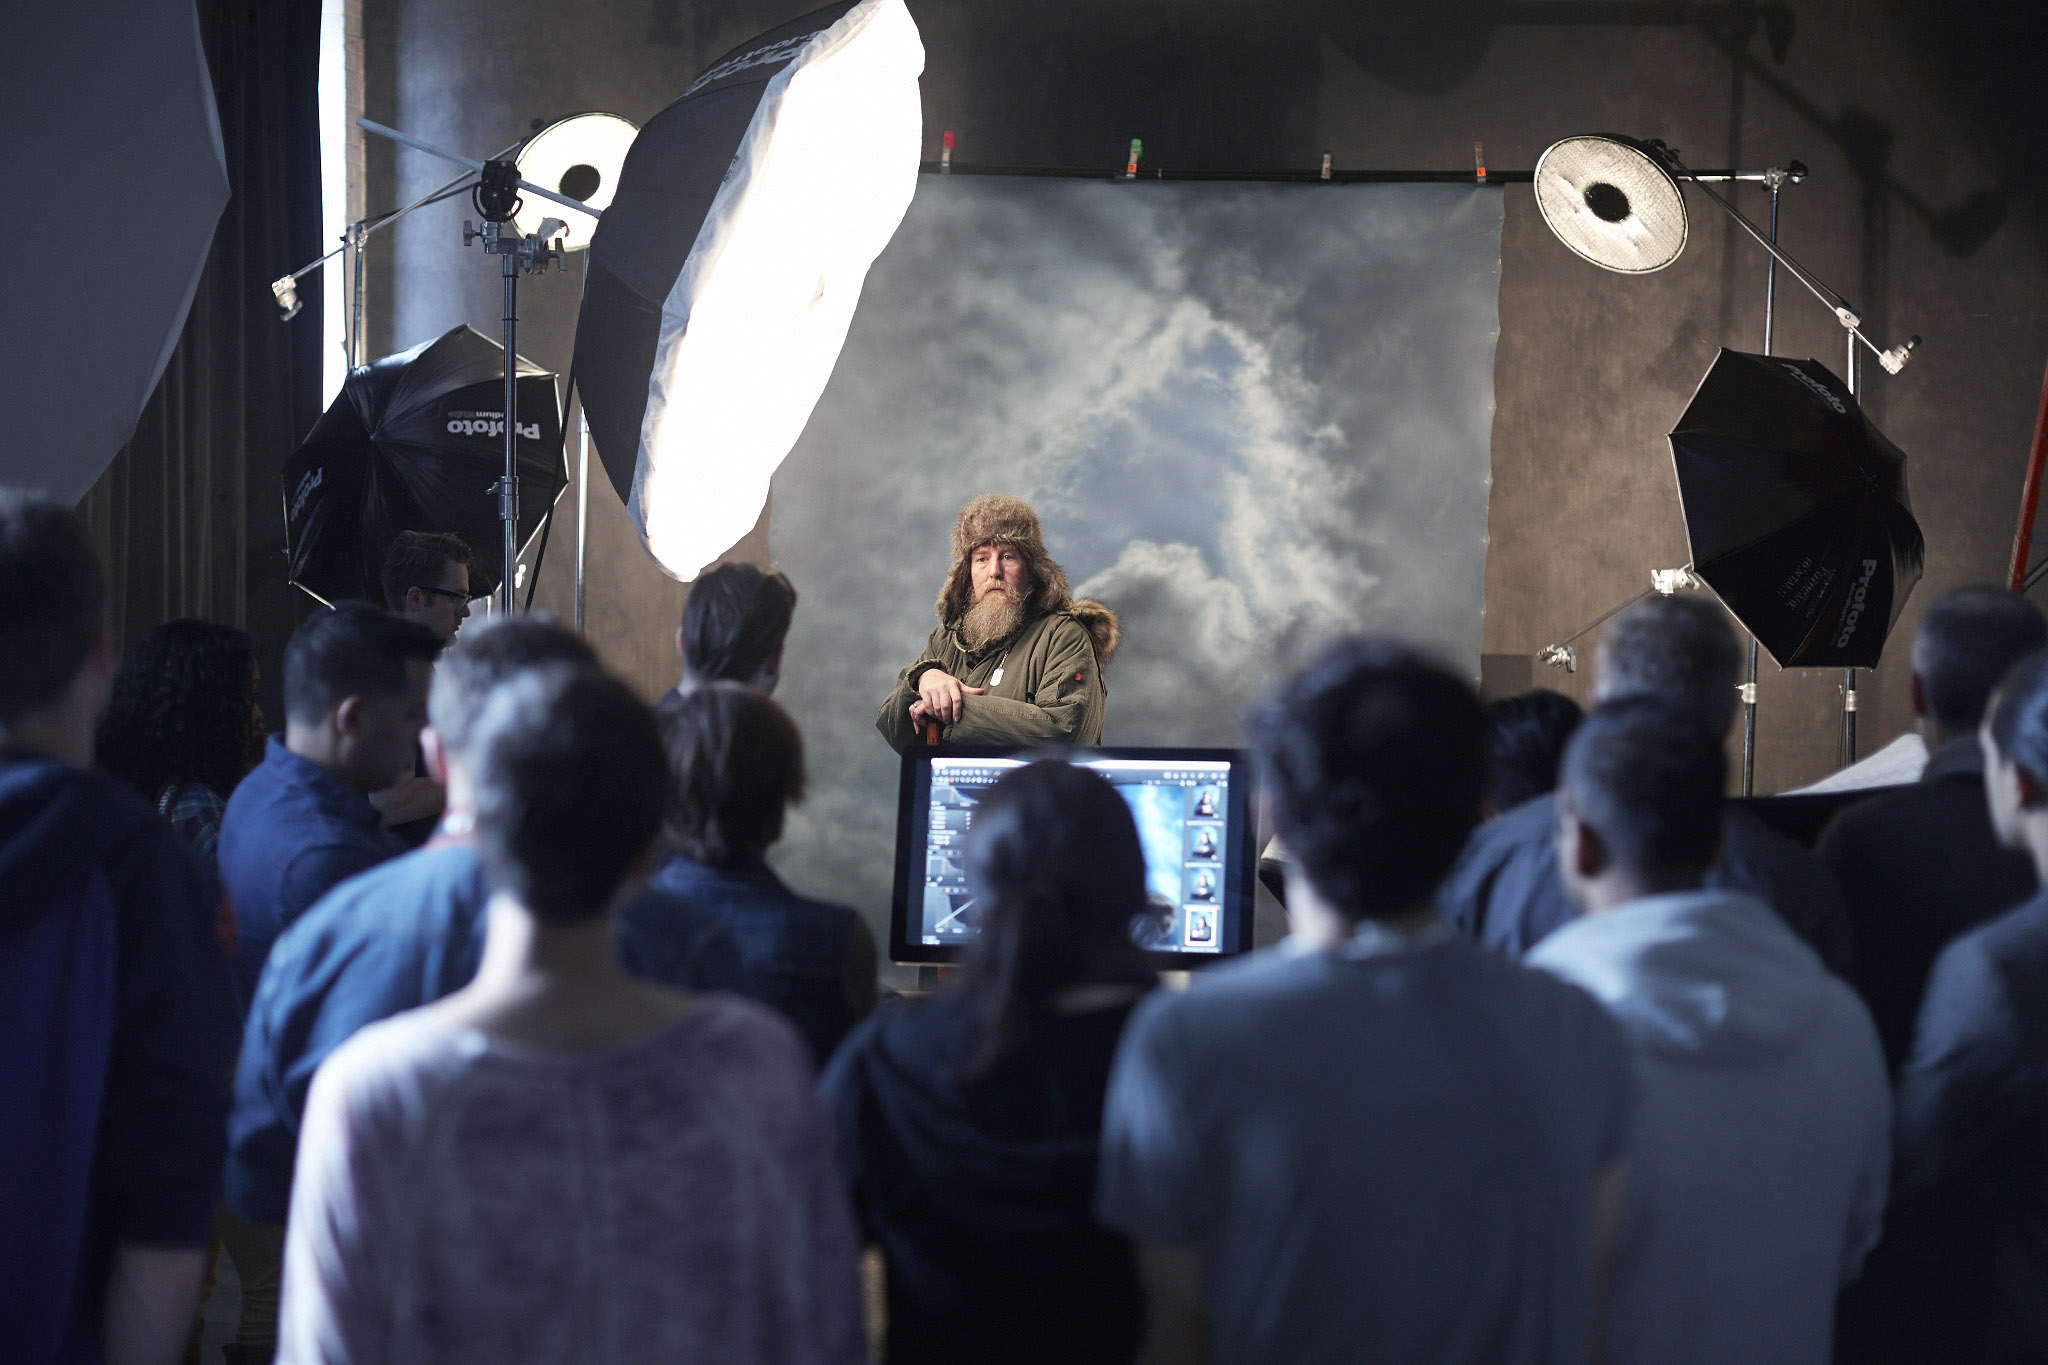 behind_the_scenes_blizzard_snow_photoshoot